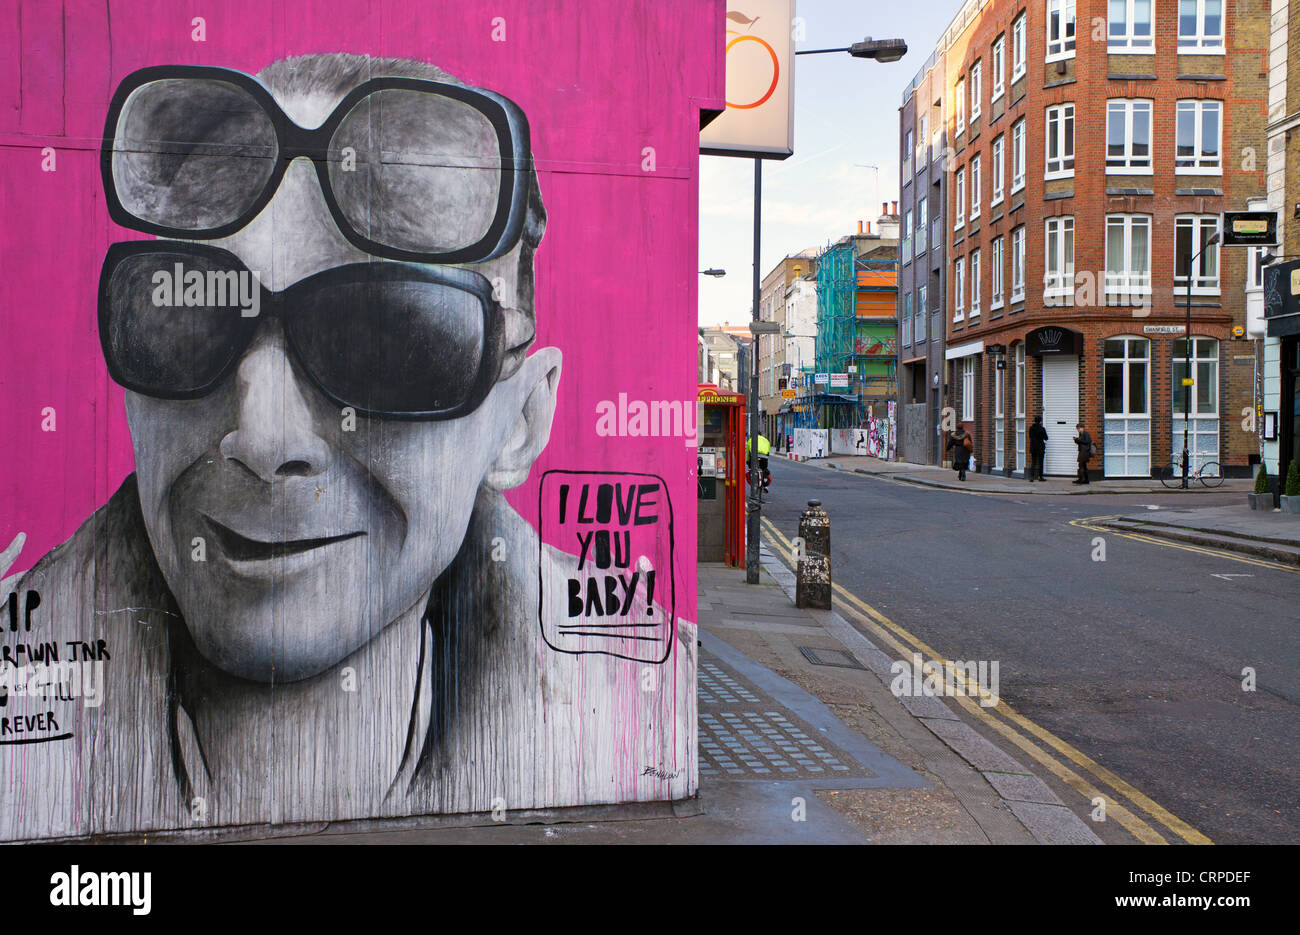 Street art on the side of a building at the junction of Bethnal Green Road and Redchurch Street in the East End - Stock Image